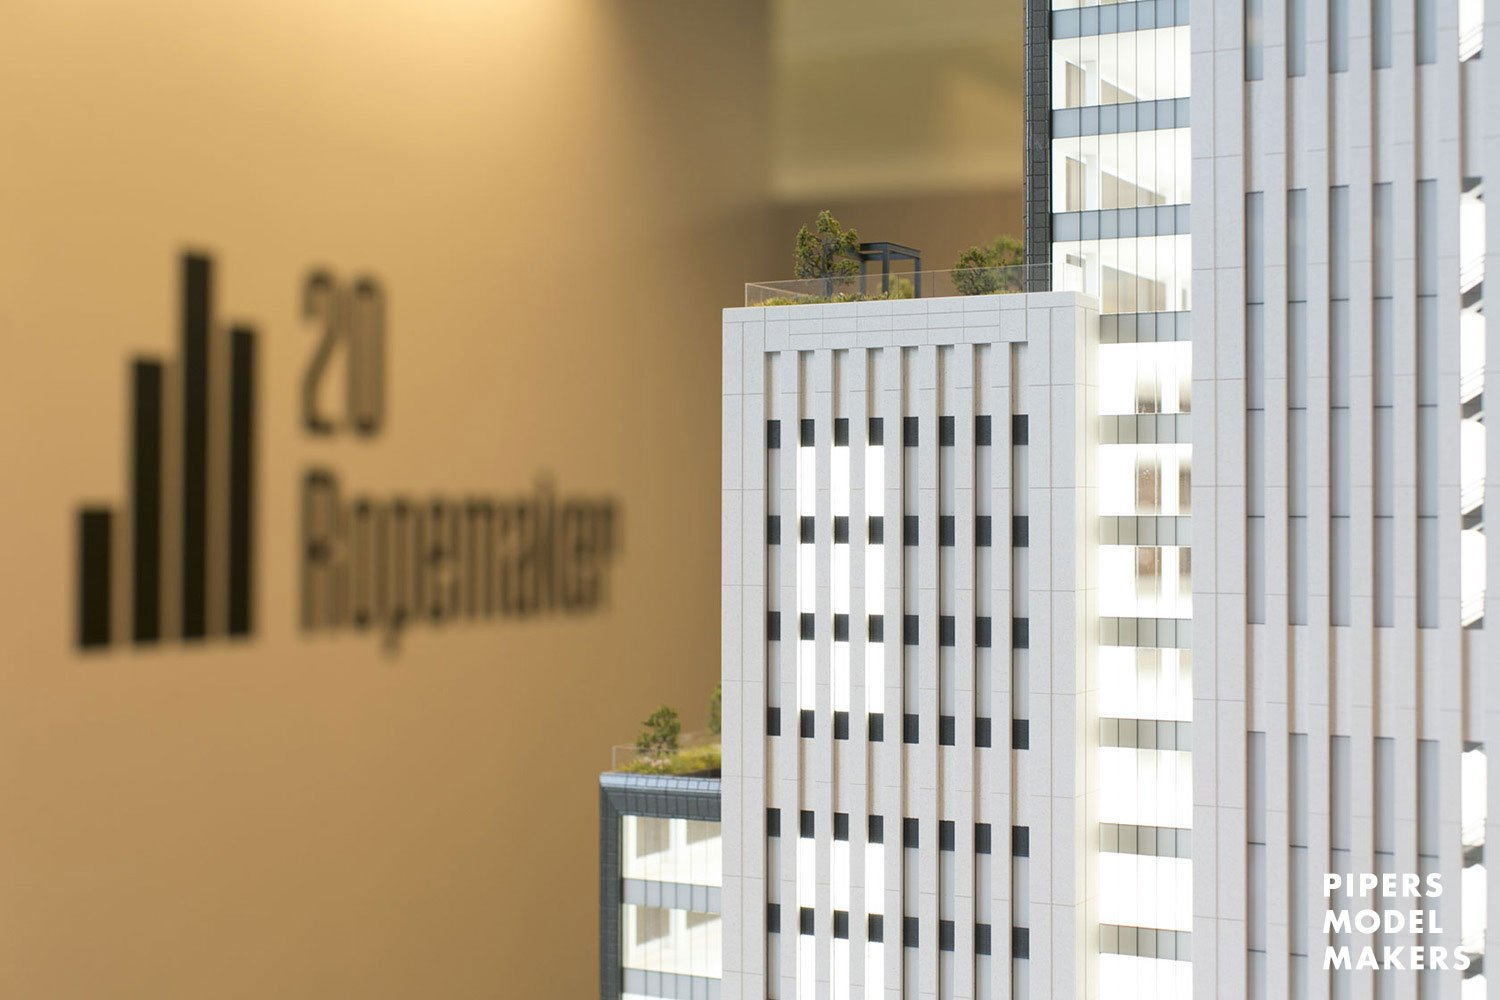 http://Ropemaker%20CO-RE%20Architectural%20Model